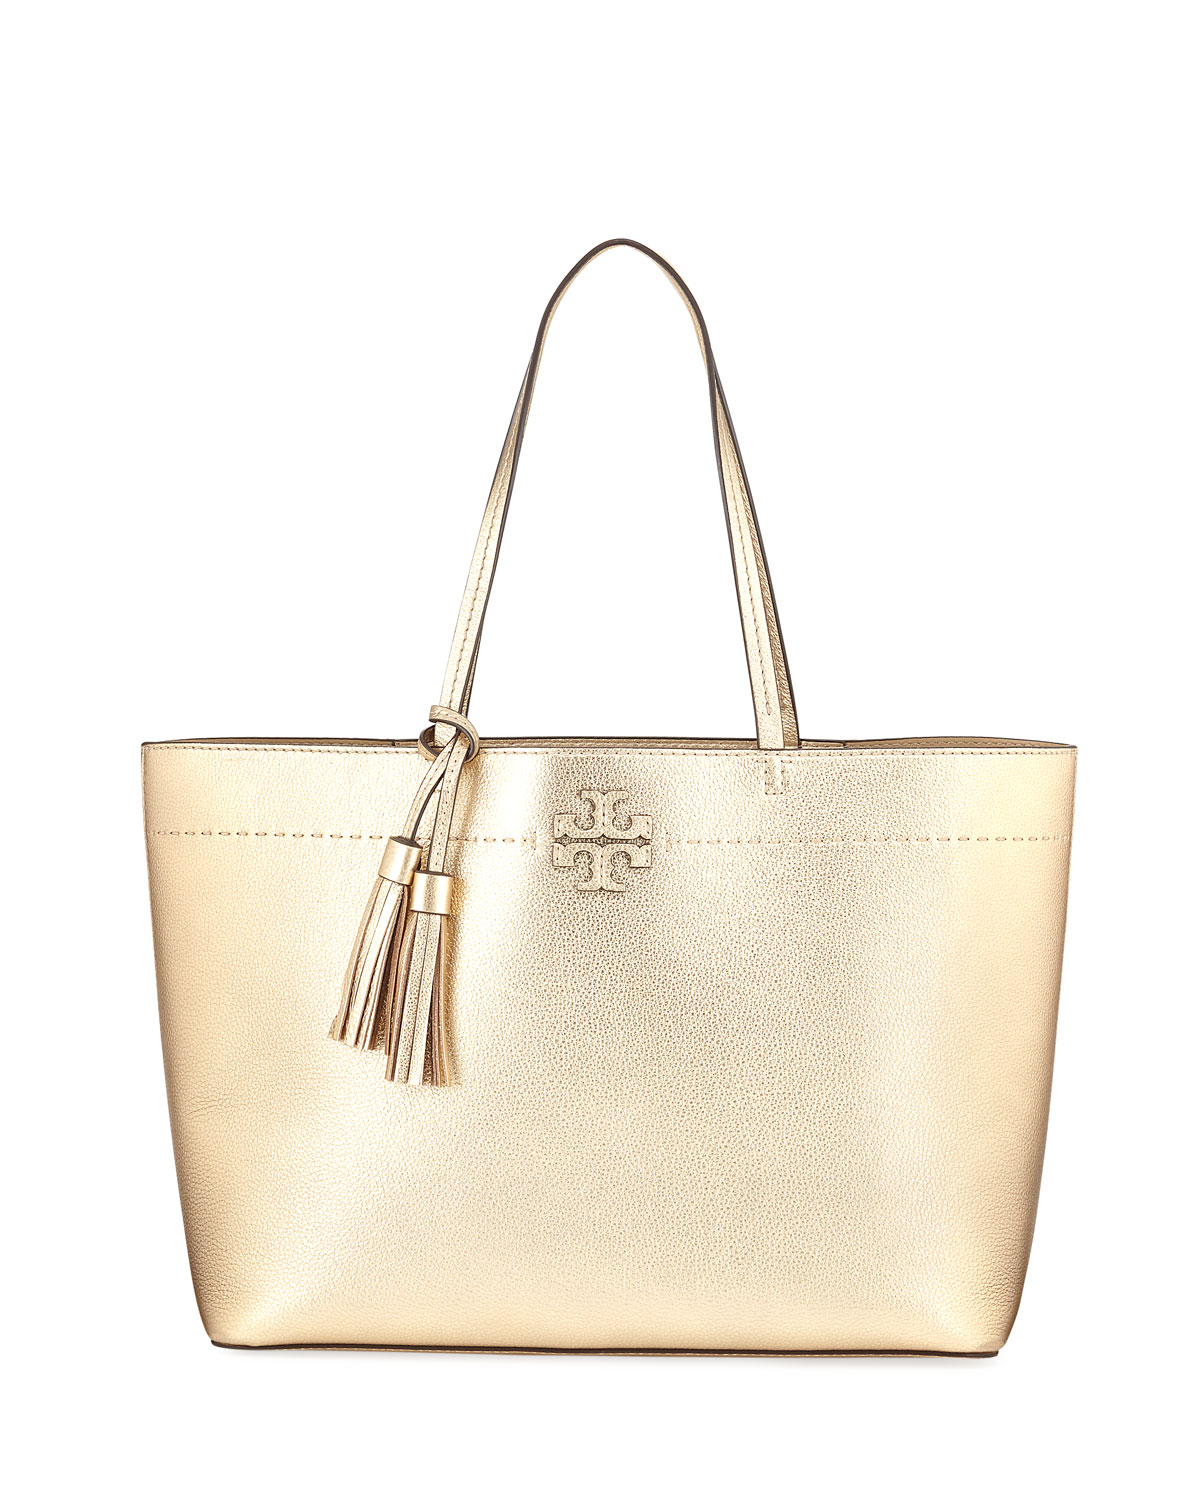 9232df469b Tory Burch McGraw Metallic Leather Tote Bag